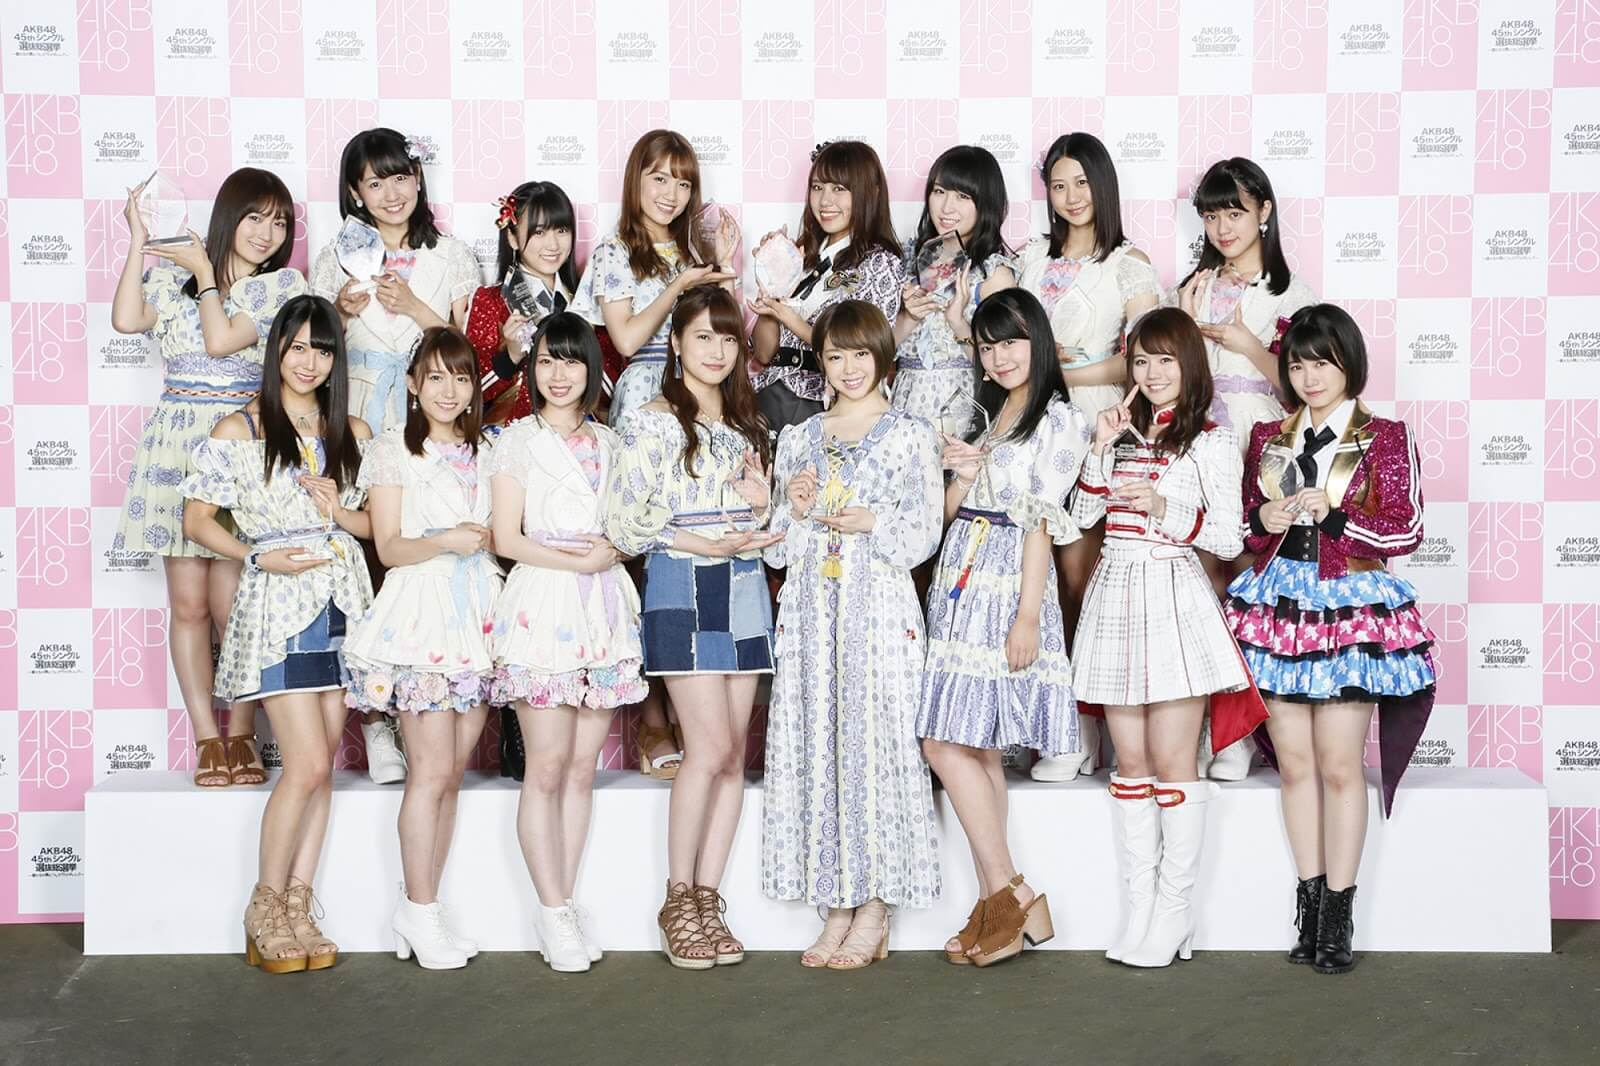 akb48 theoretical base Oogoe diamond by akb48 here is a part of a tv show which features a handshake event with their fans.